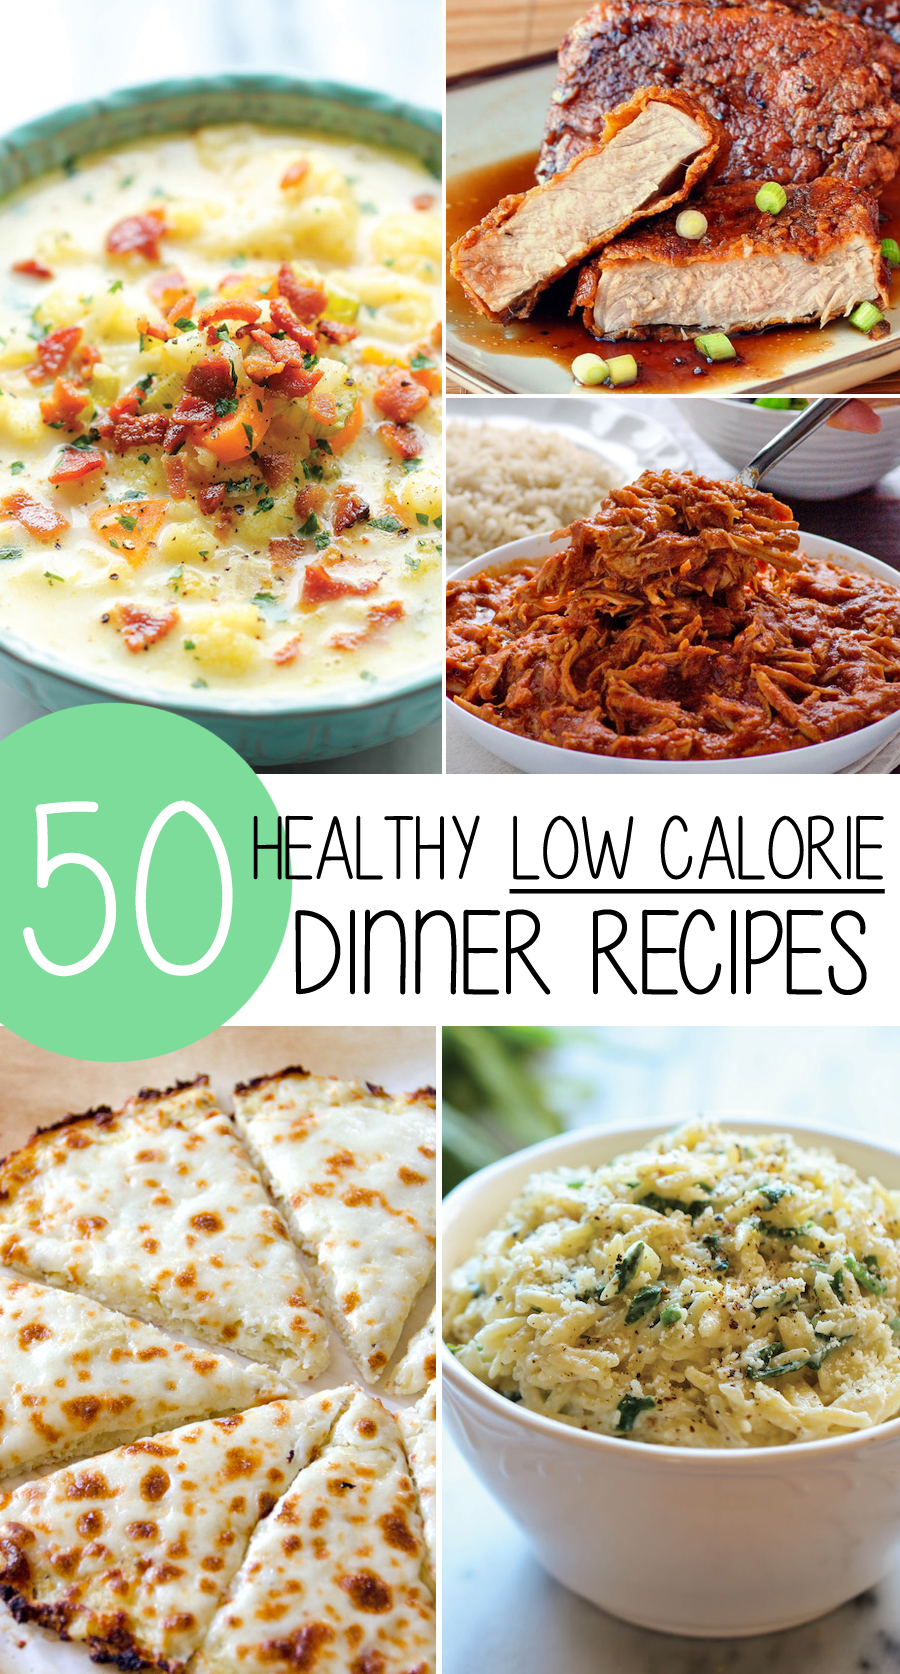 50 healthy low calorie weight loss dinner recipes 50 healthy low calorie dinner recipes forumfinder Gallery